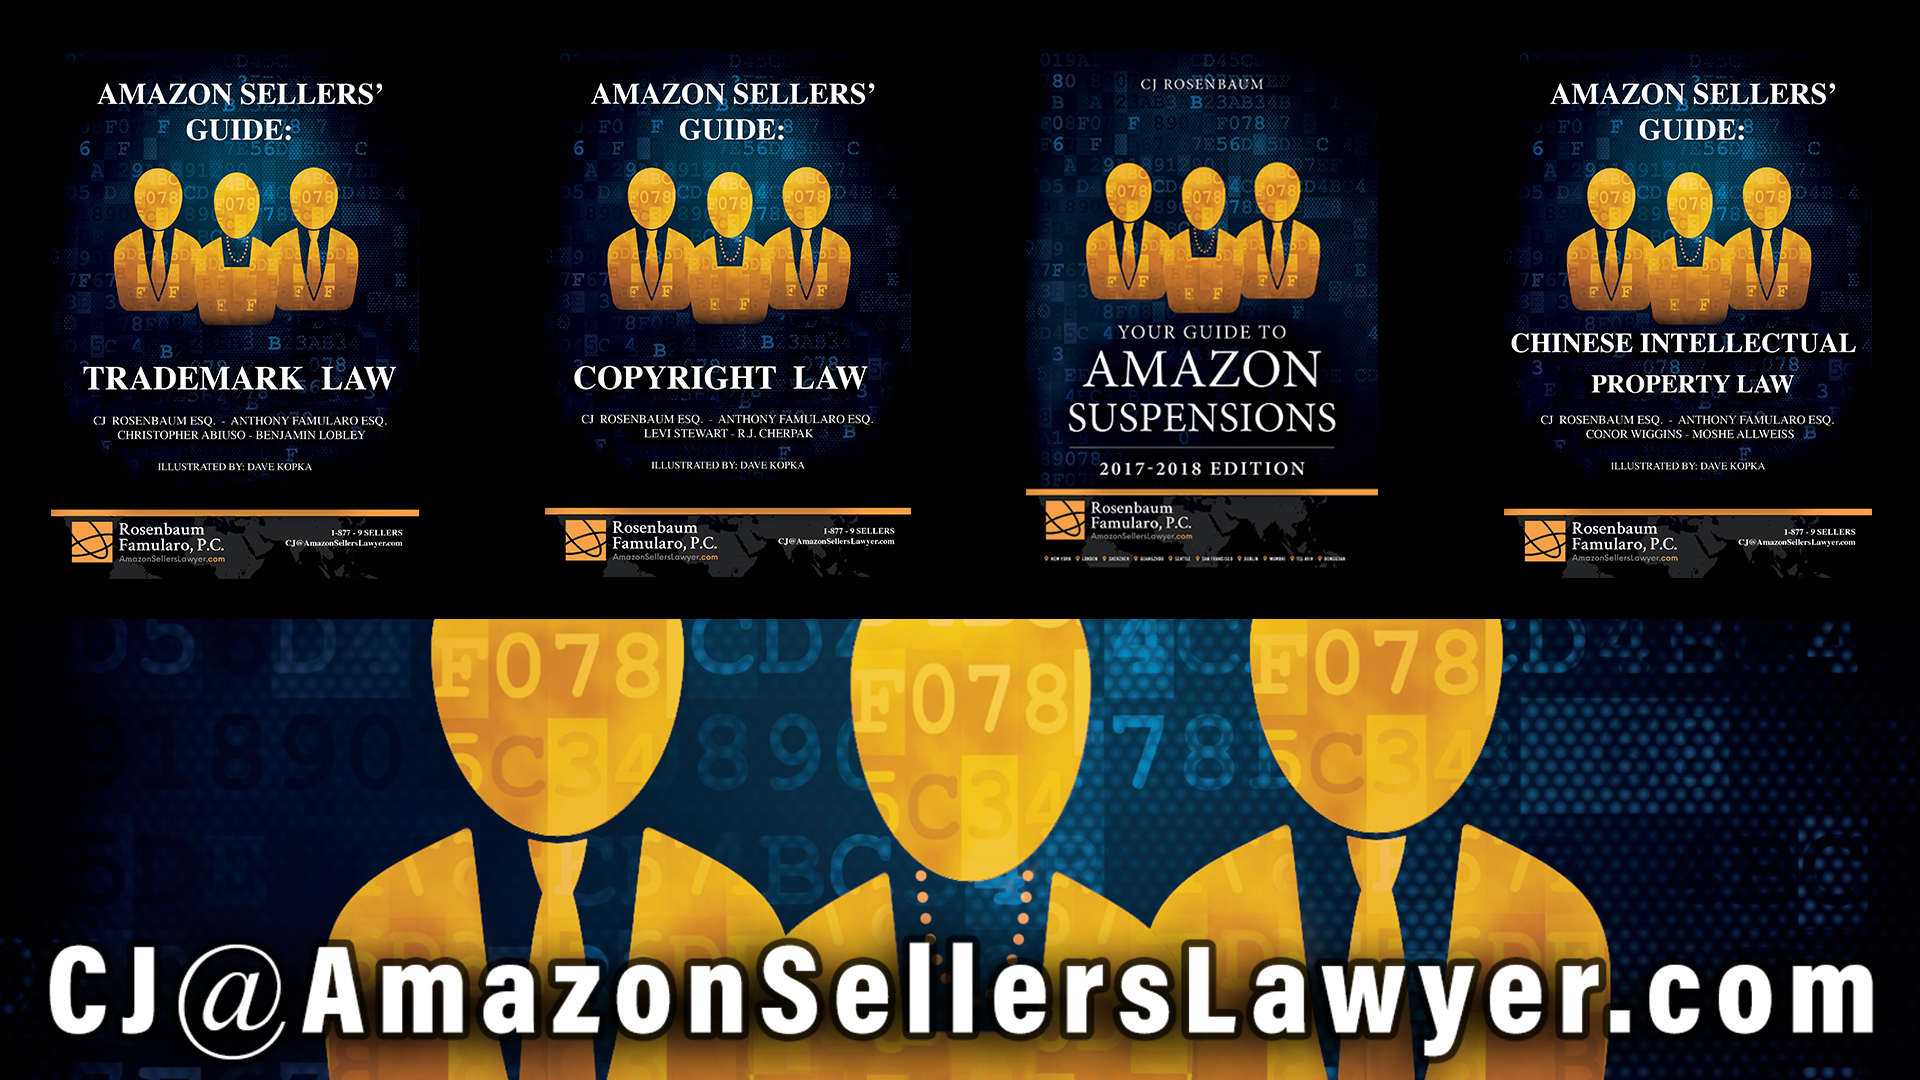 Amazon Sellers' Lawyer Books - Guide to AMZ Suspensions: Sellers must tread carefully to avoid suspensions.